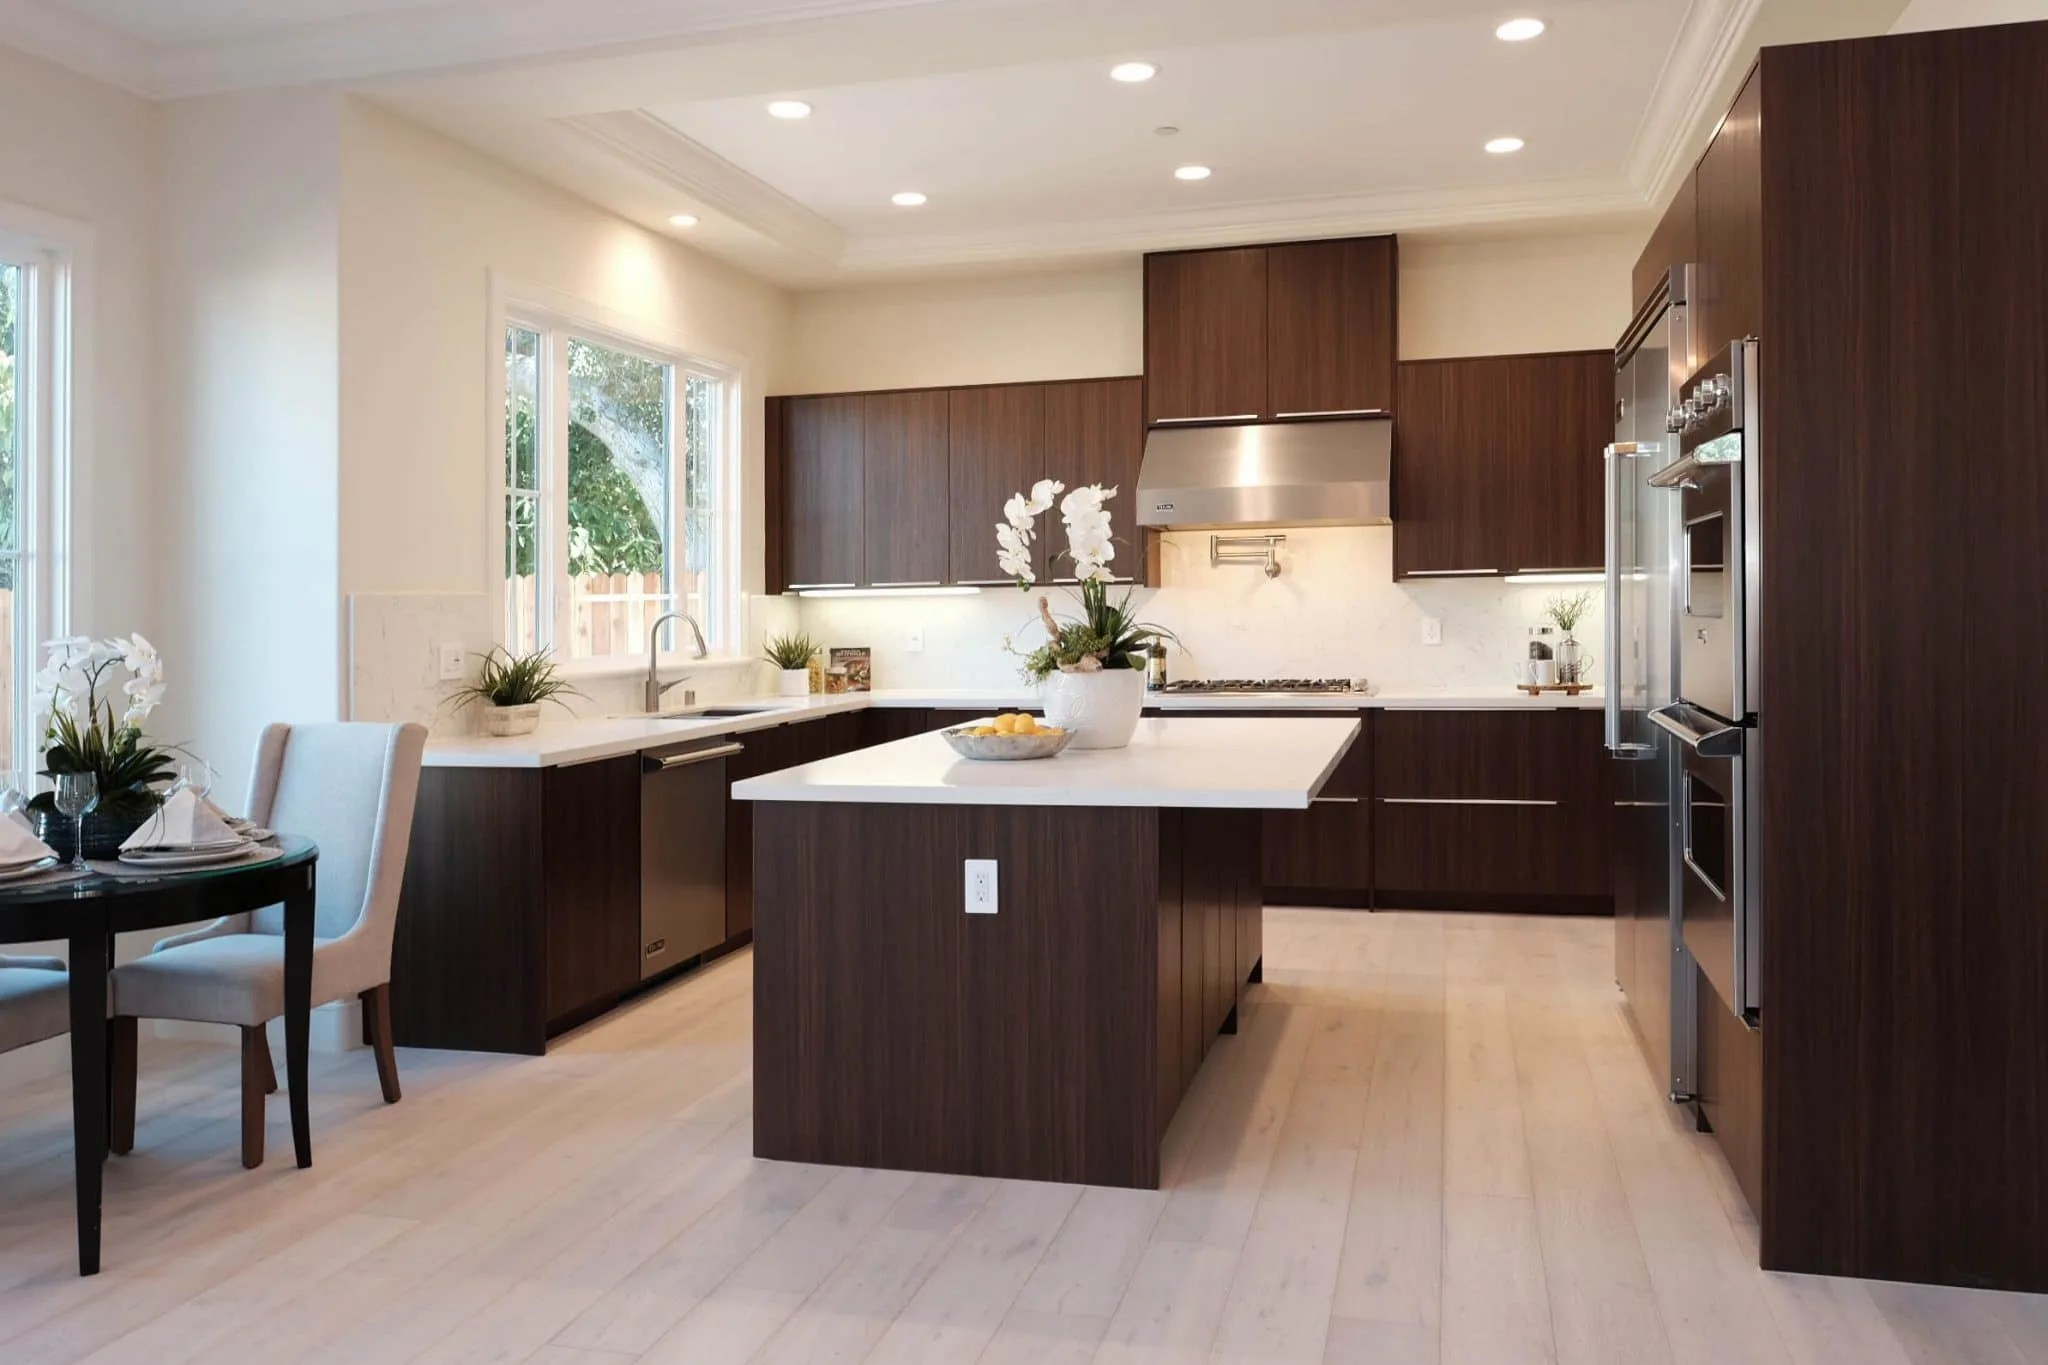 Best Kitchen Gallery: Everything About Slab Cabi Doors Aka European Style Cabi S of Cocoa Kitchen Cabinets on rachelxblog.com